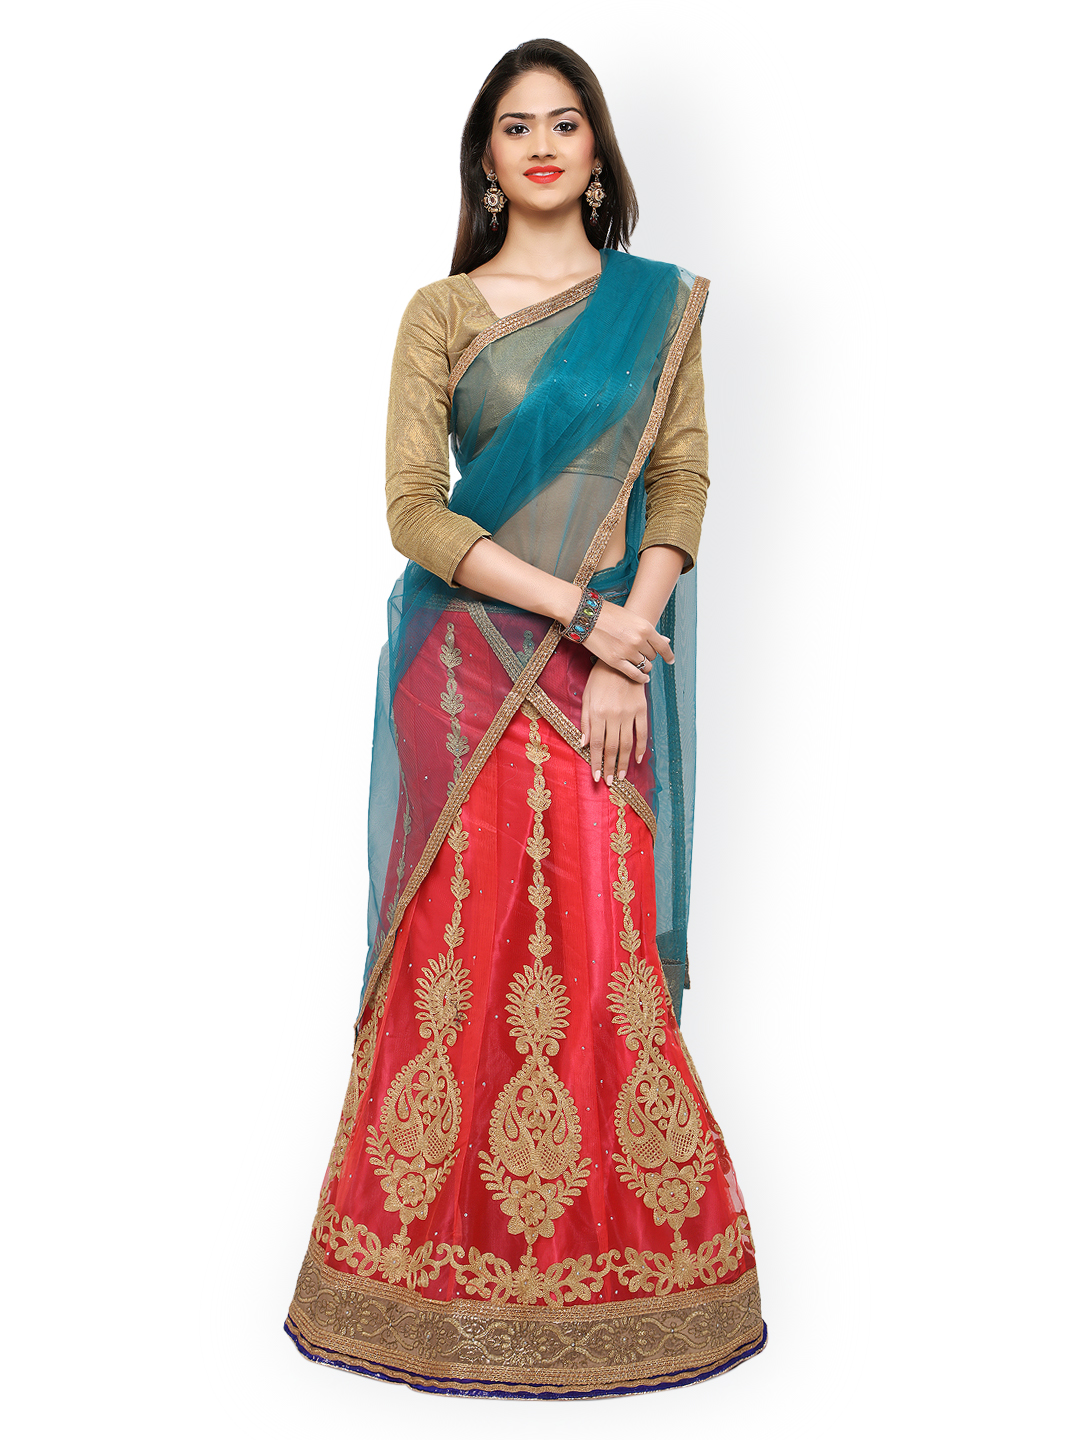 Rajesh Silk Mills Pink & Brown Embroidered Net Semi-Stitched Lehenga Choli with Dupatta Price in India